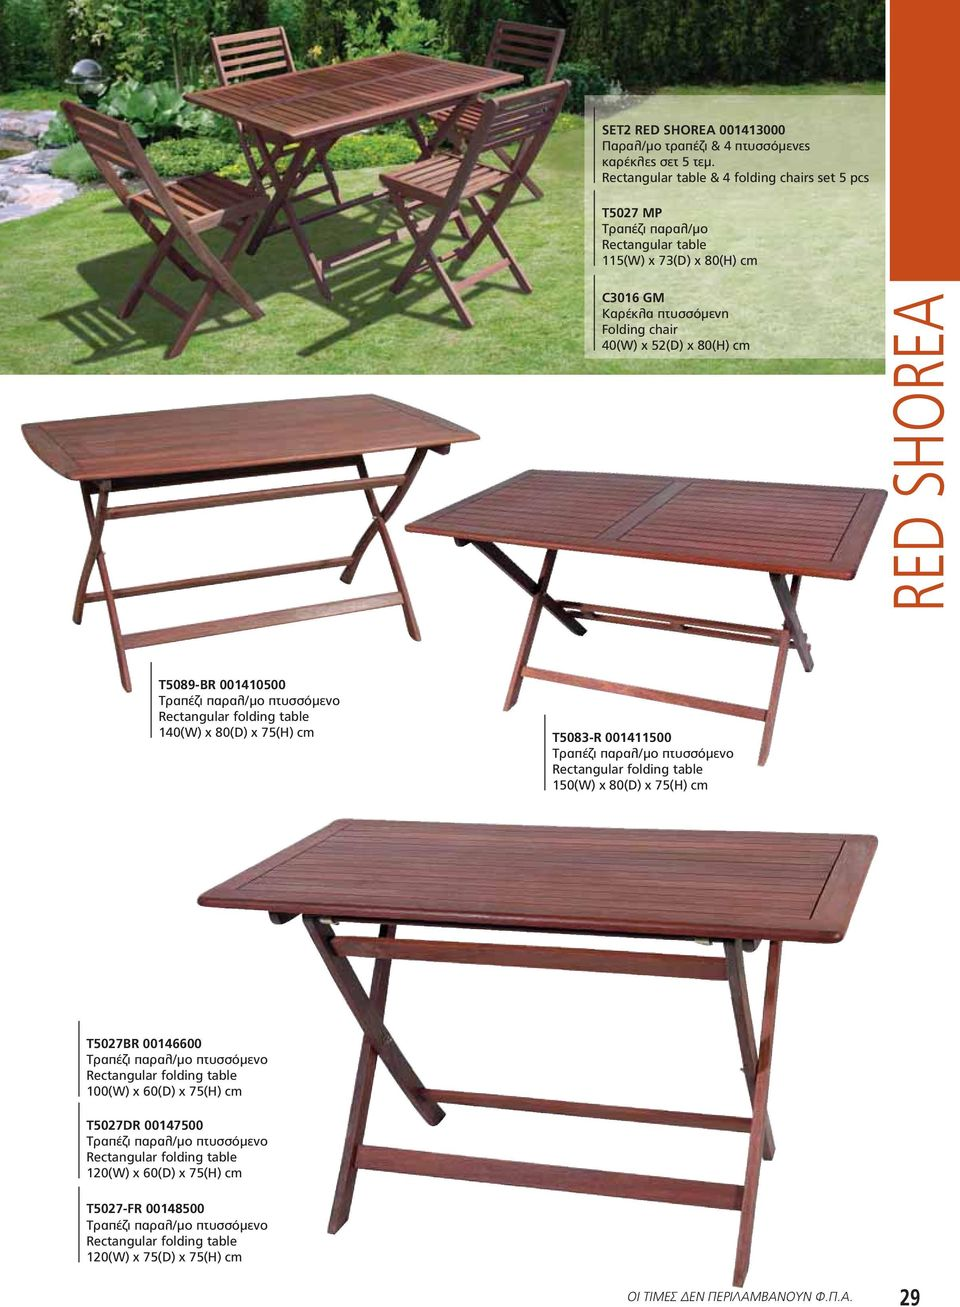 T5089-BR 001410500 Τραπέζι παραλ/μο πτυσσόμενο Rectangular folding table 140(W) x 80(D) x 75(H) cm T5083-R 001411500 Τραπέζι παραλ/μο πτυσσόμενο Rectangular folding table 150(W) x 80(D) x 75(H) cm